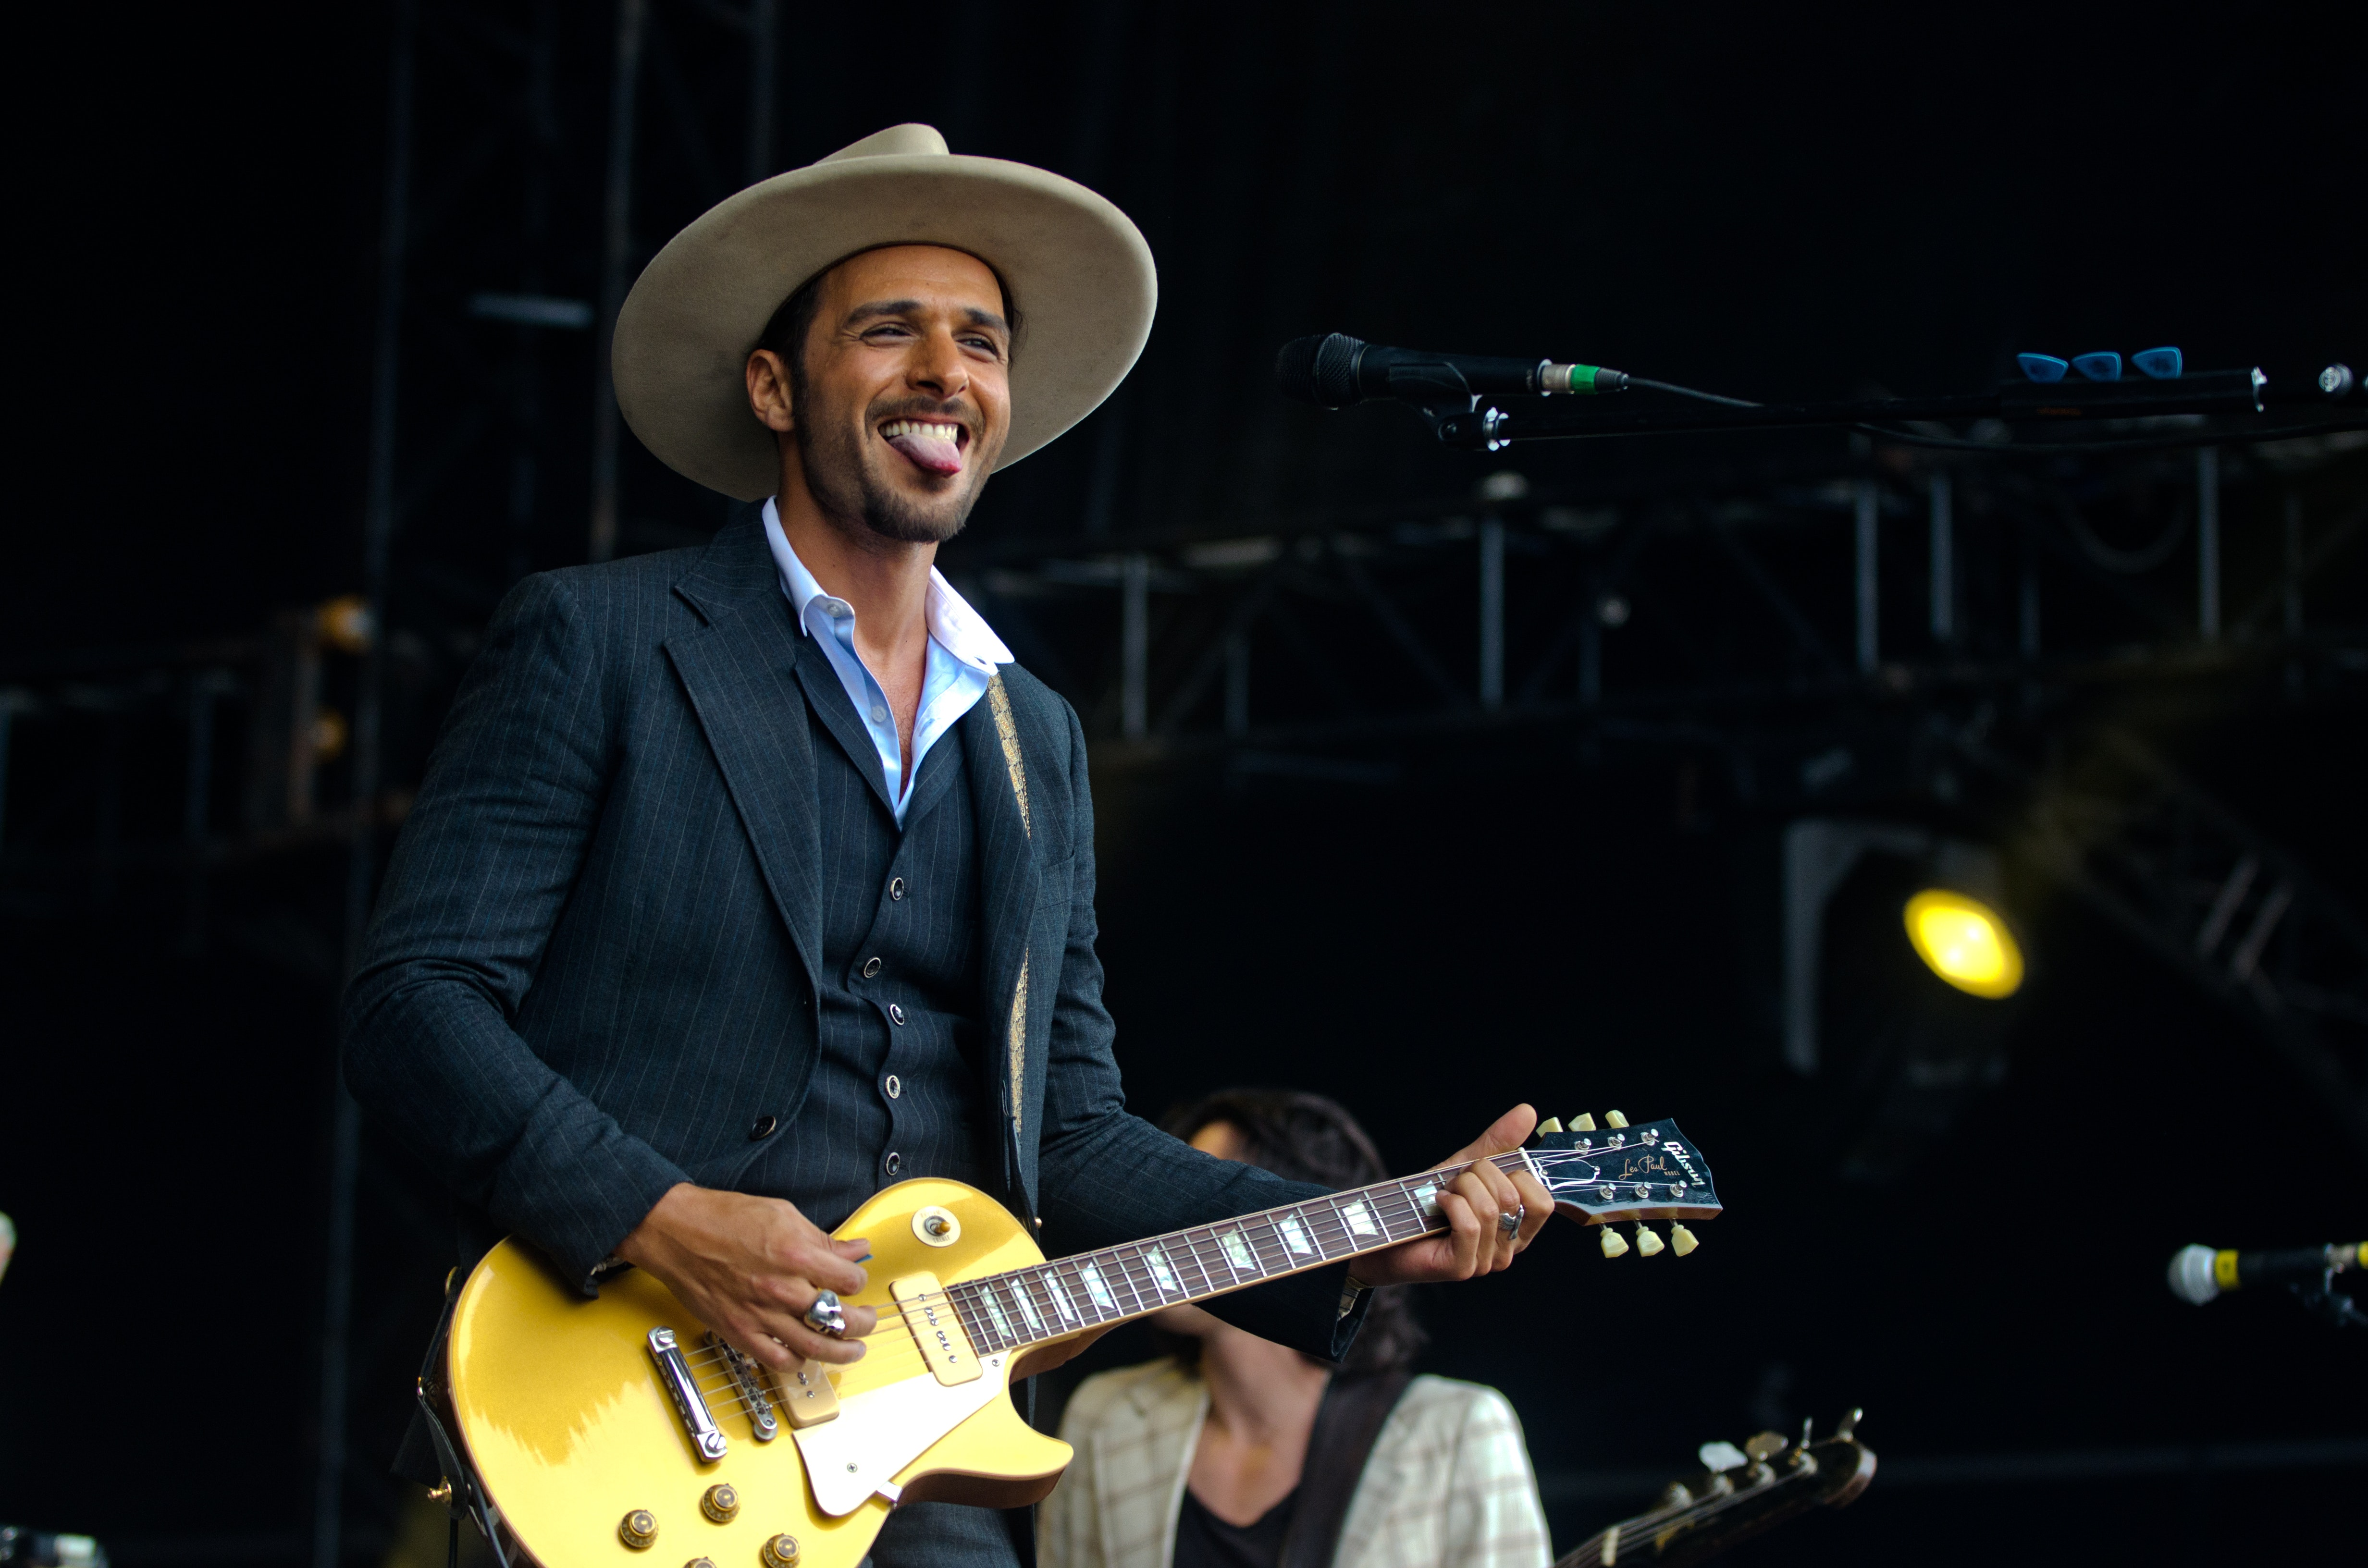 Main in Black Suit Jacket Playing Les Paul Electric Guitar, Band, Concert, Cowboy hat, Festival, HQ Photo